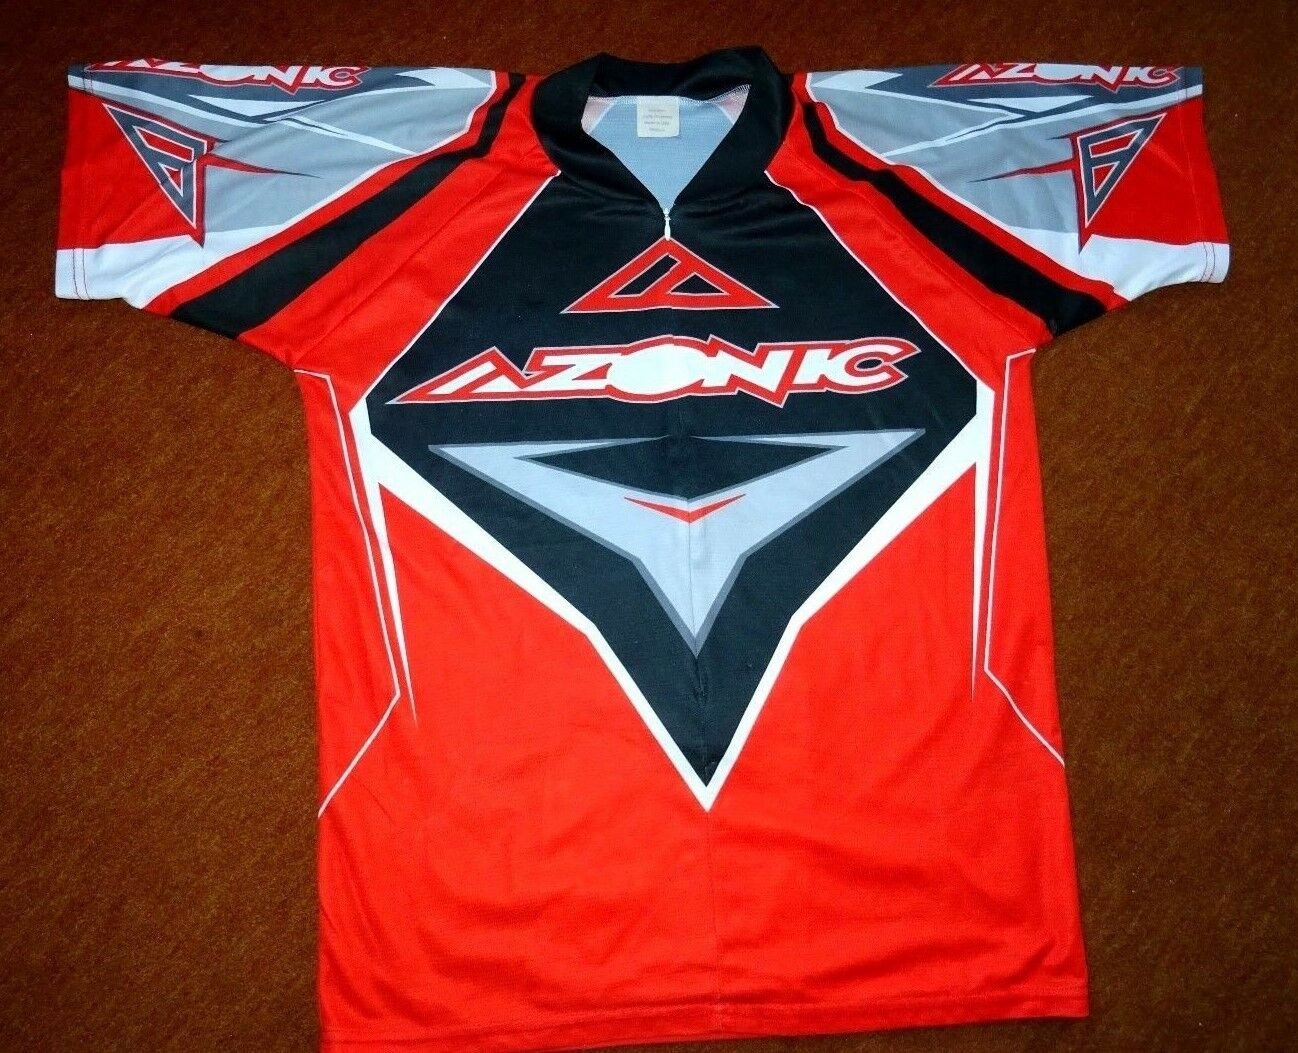 TOP Radsport-Trikot v. AZONIC Gr. M Funktionsfaser Bioderm RV-Tasche Top Design